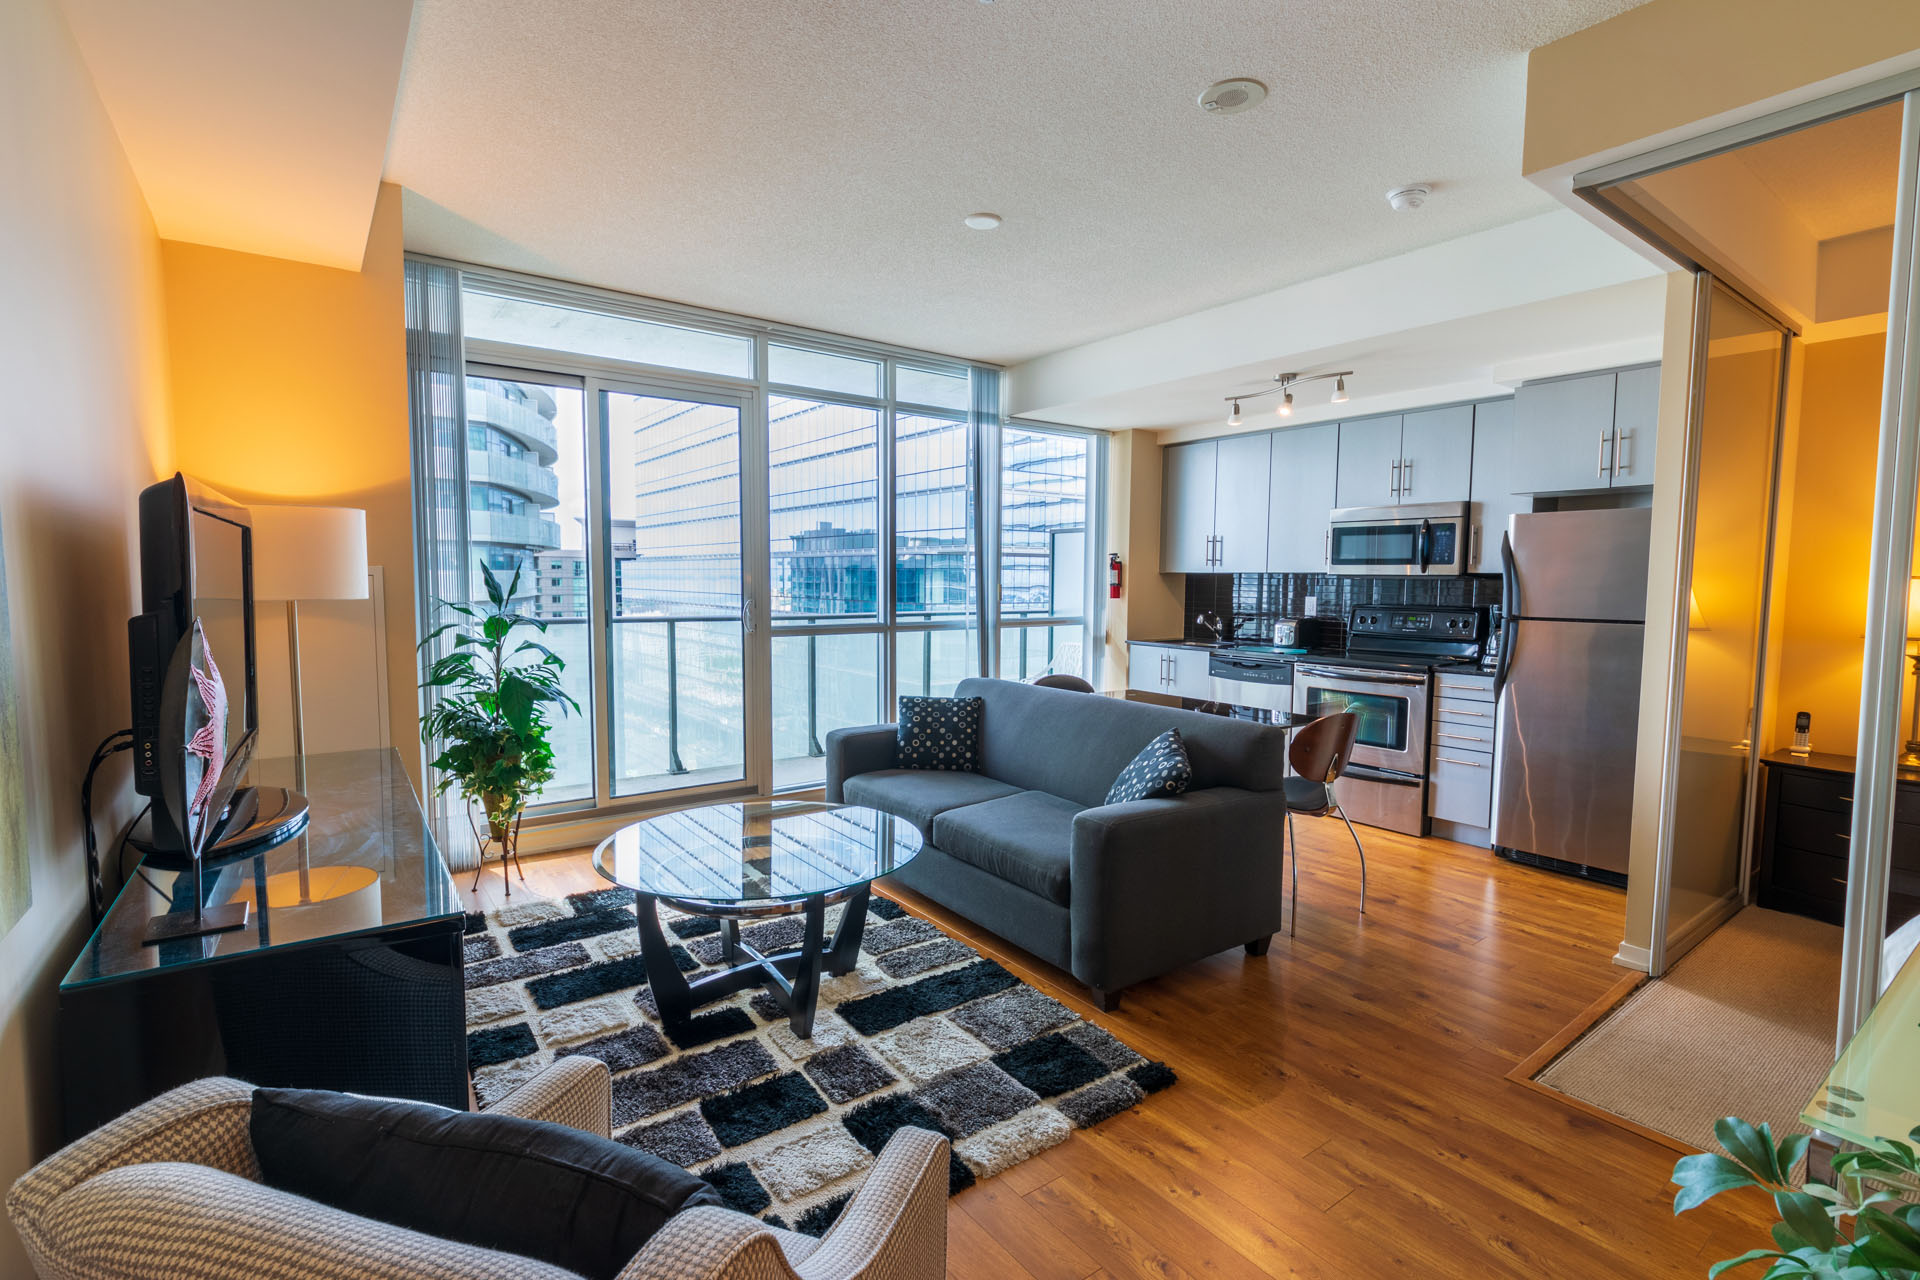 Suite Rental at Maple Leaf Square Downtown Toronto Living Room, Kitchen